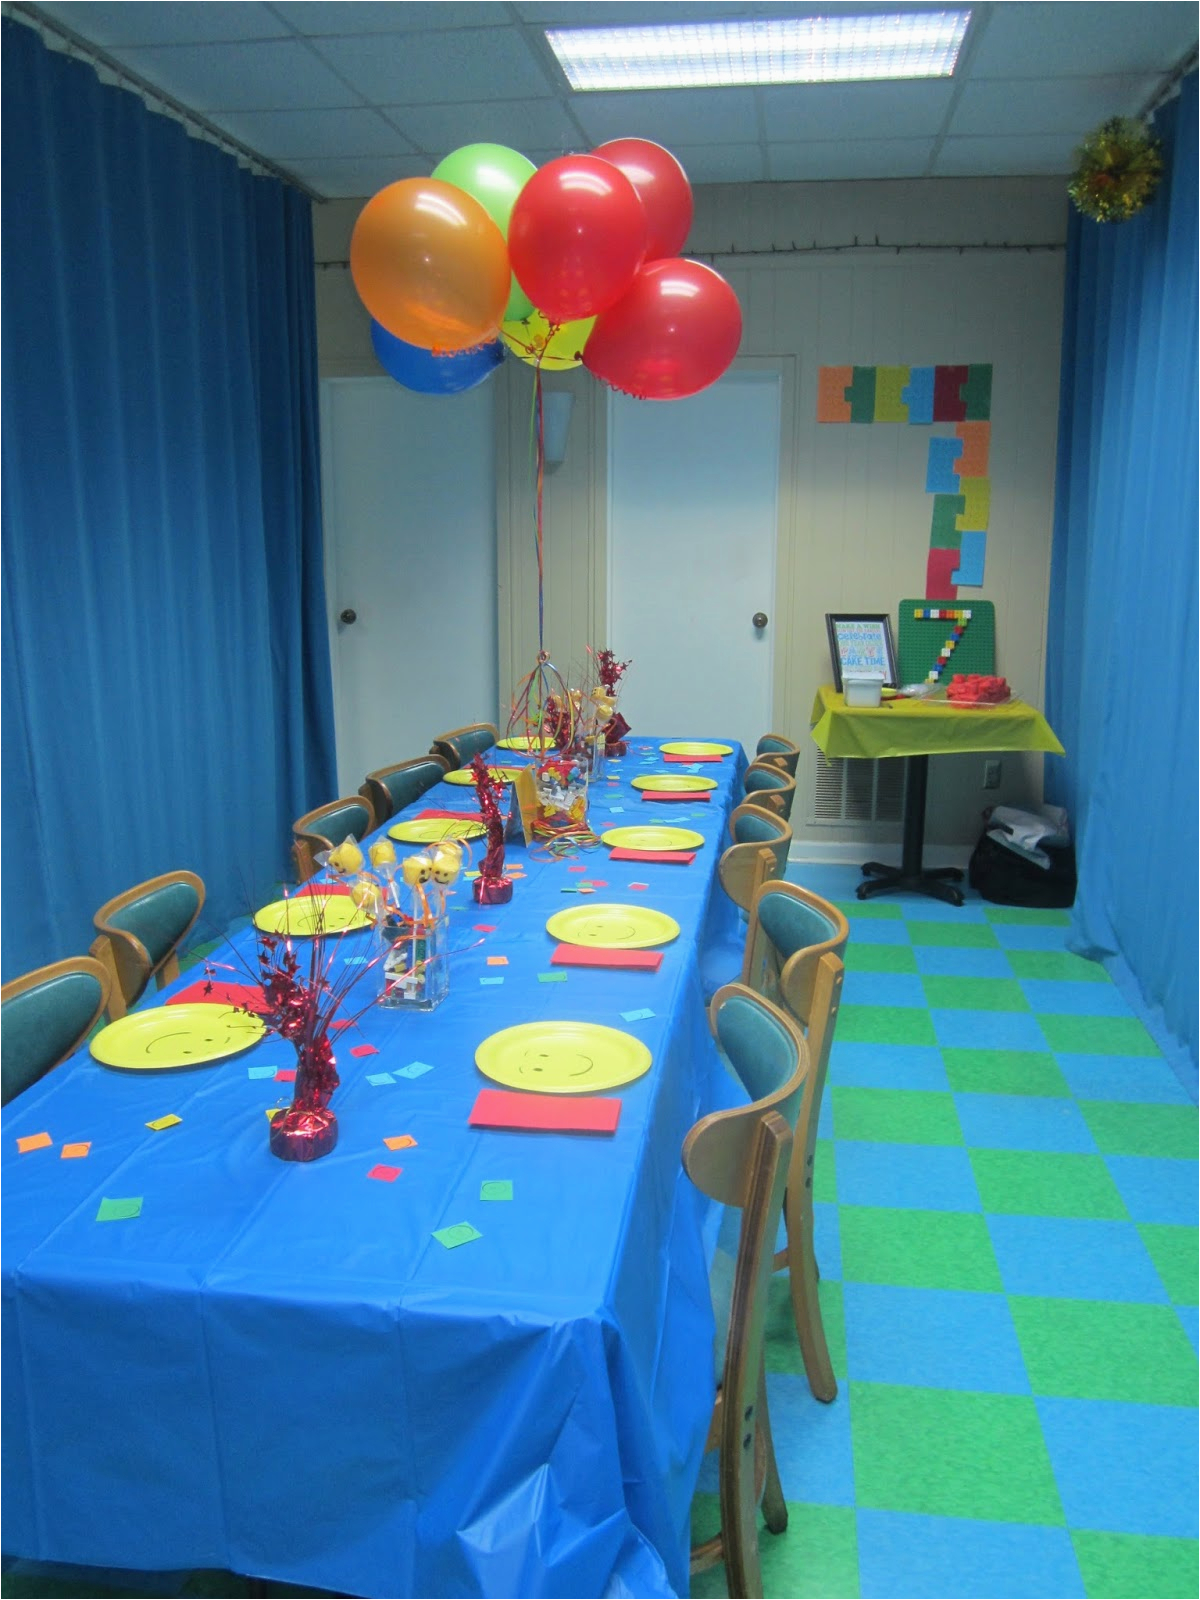 13 Year Old Birthday Party Decorations 13 Year Old Birthday Party Ideas for Girls